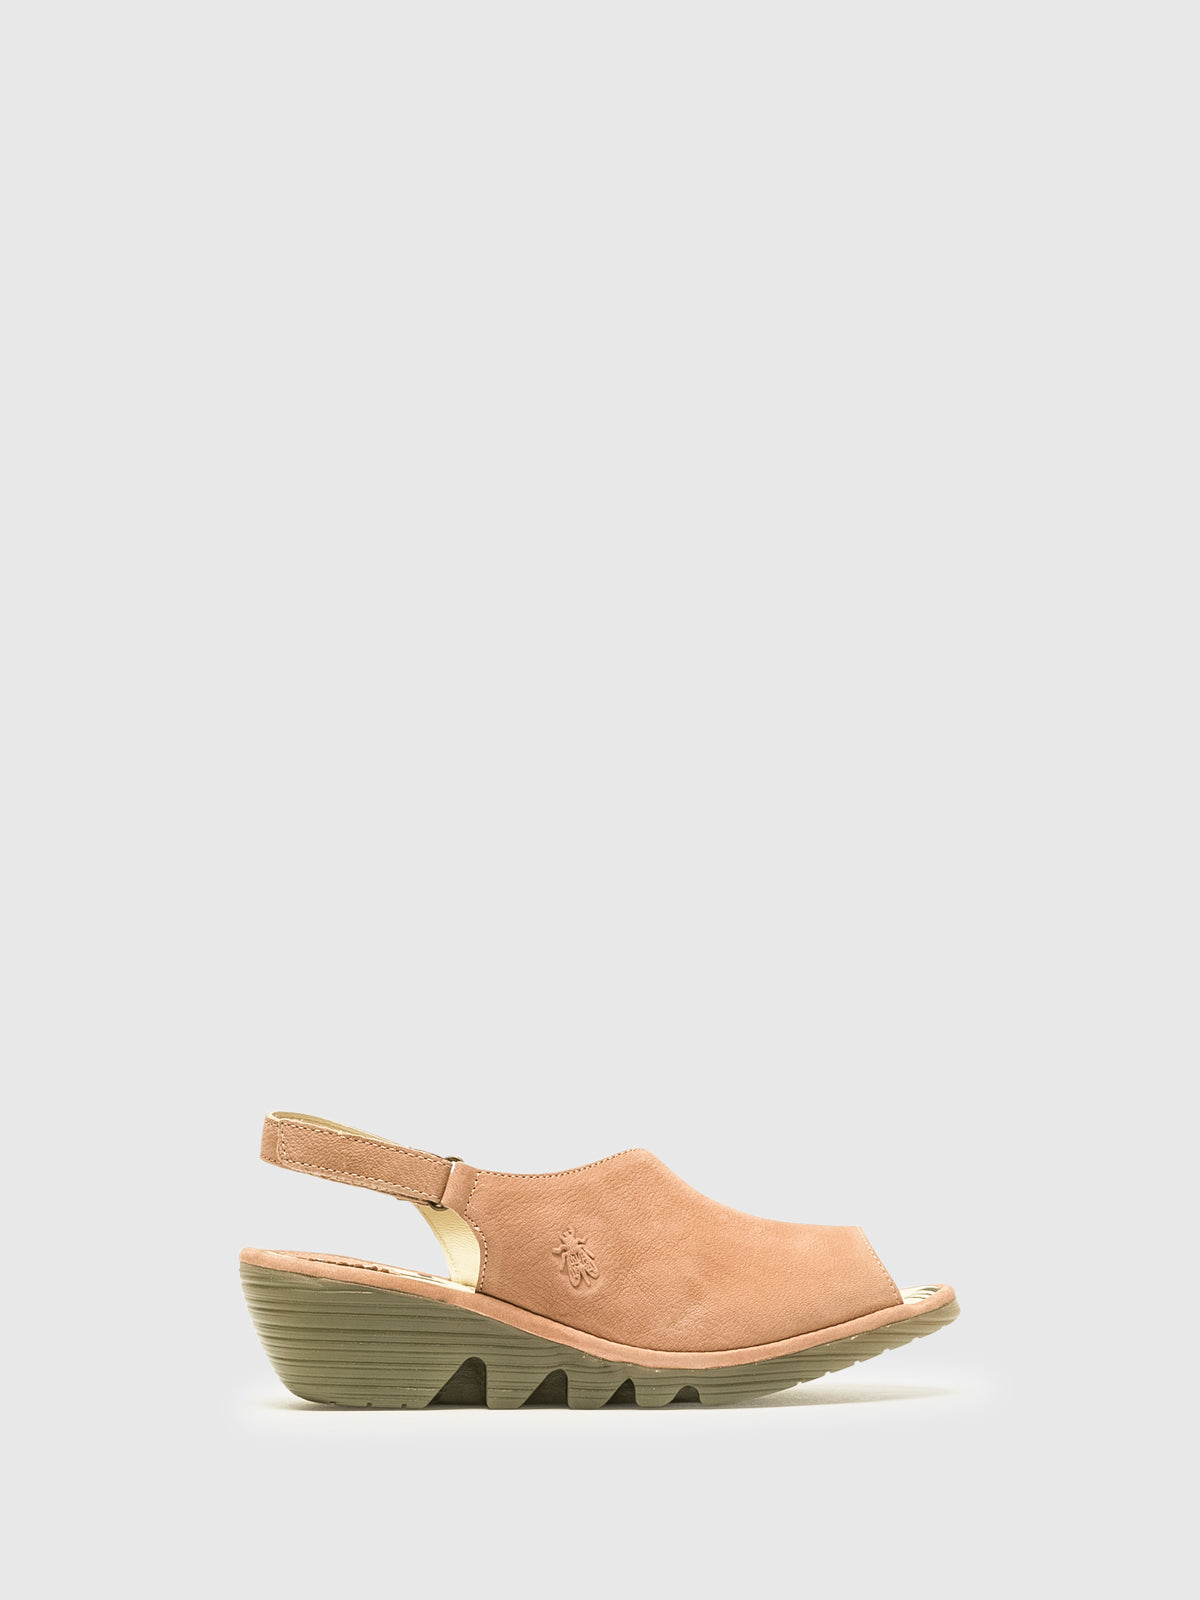 Fly London Pink Velcro Sandals